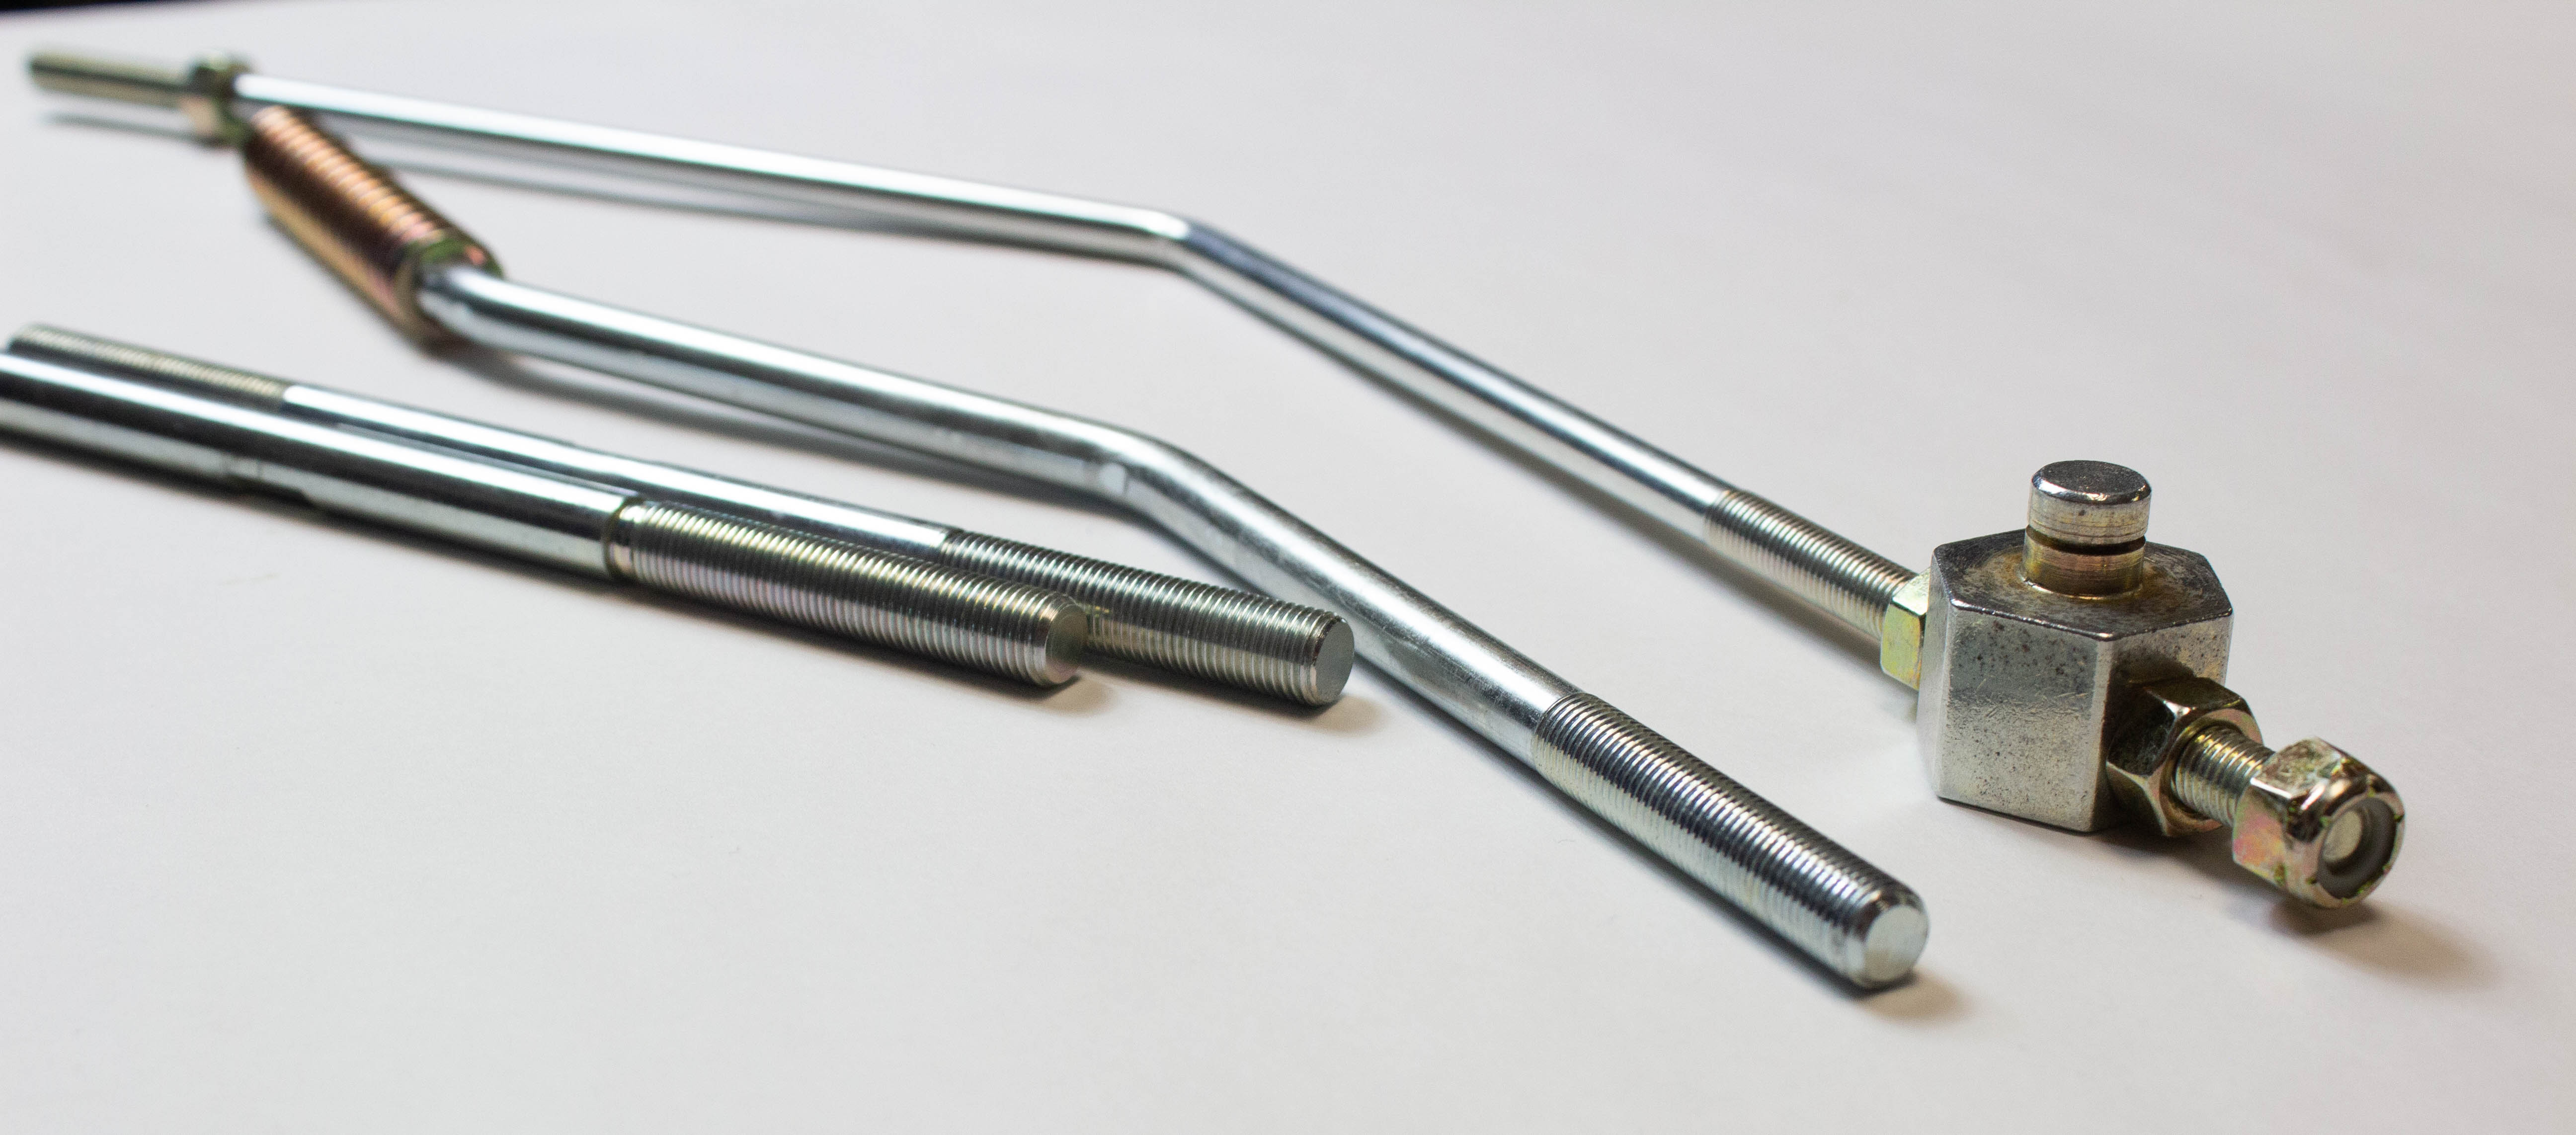 All You Need to Know About Triangle's Threaded Rods